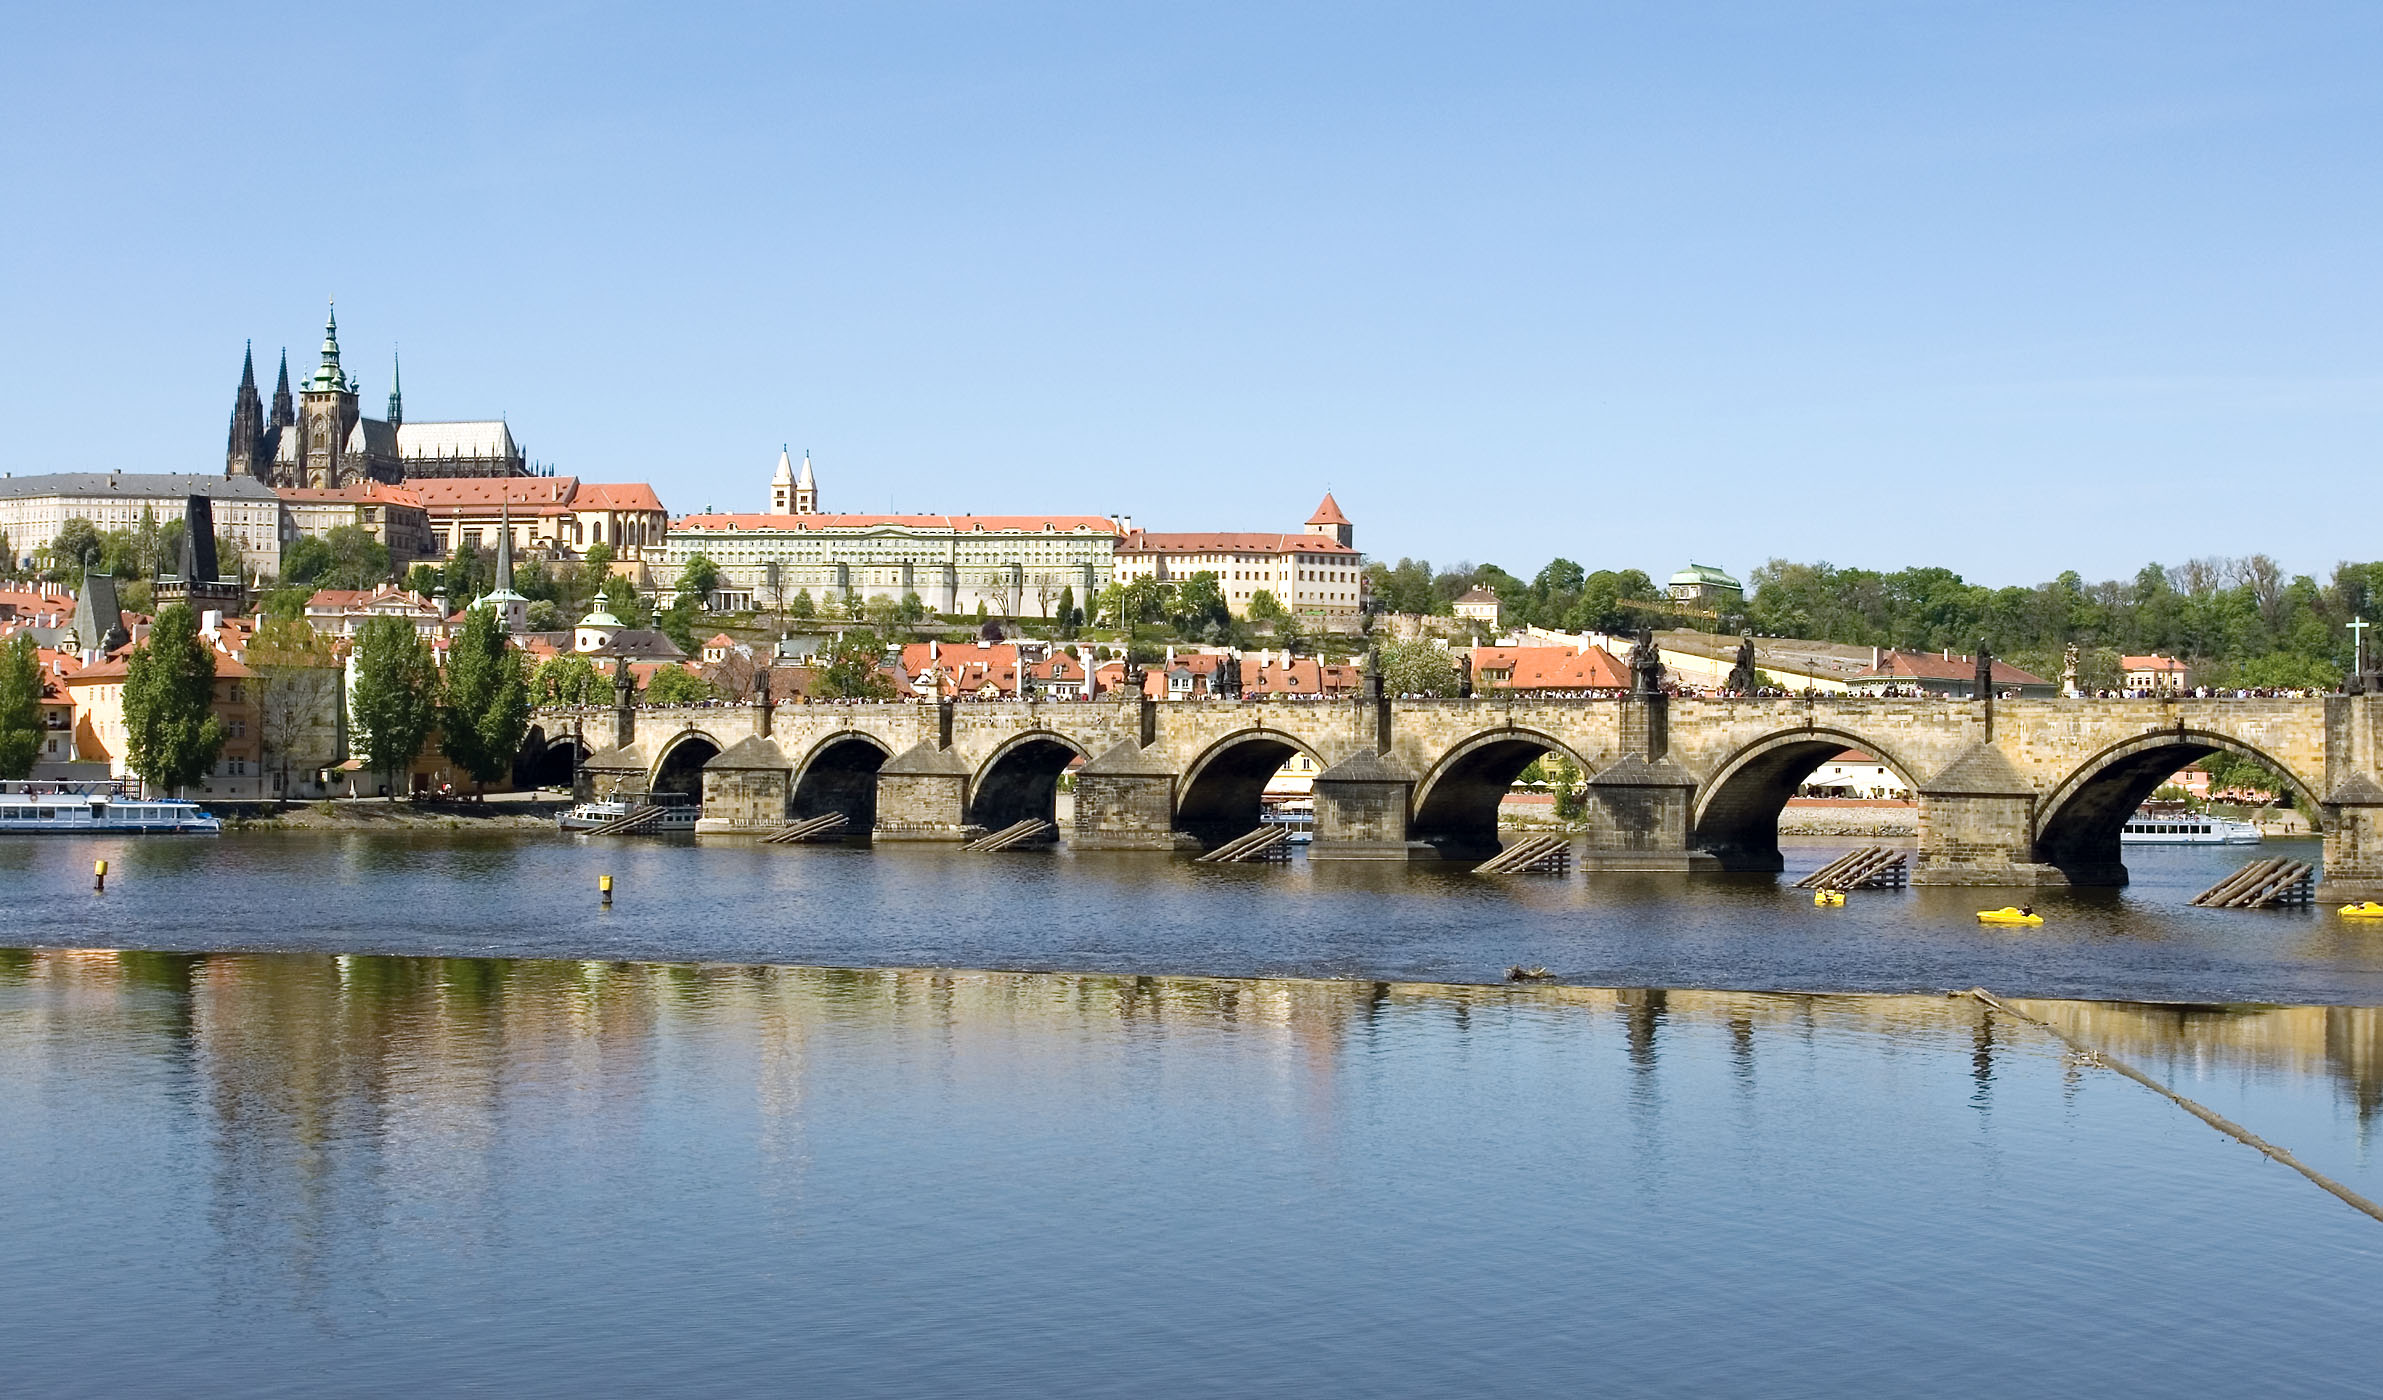 Charles Bridge - Wikipedia